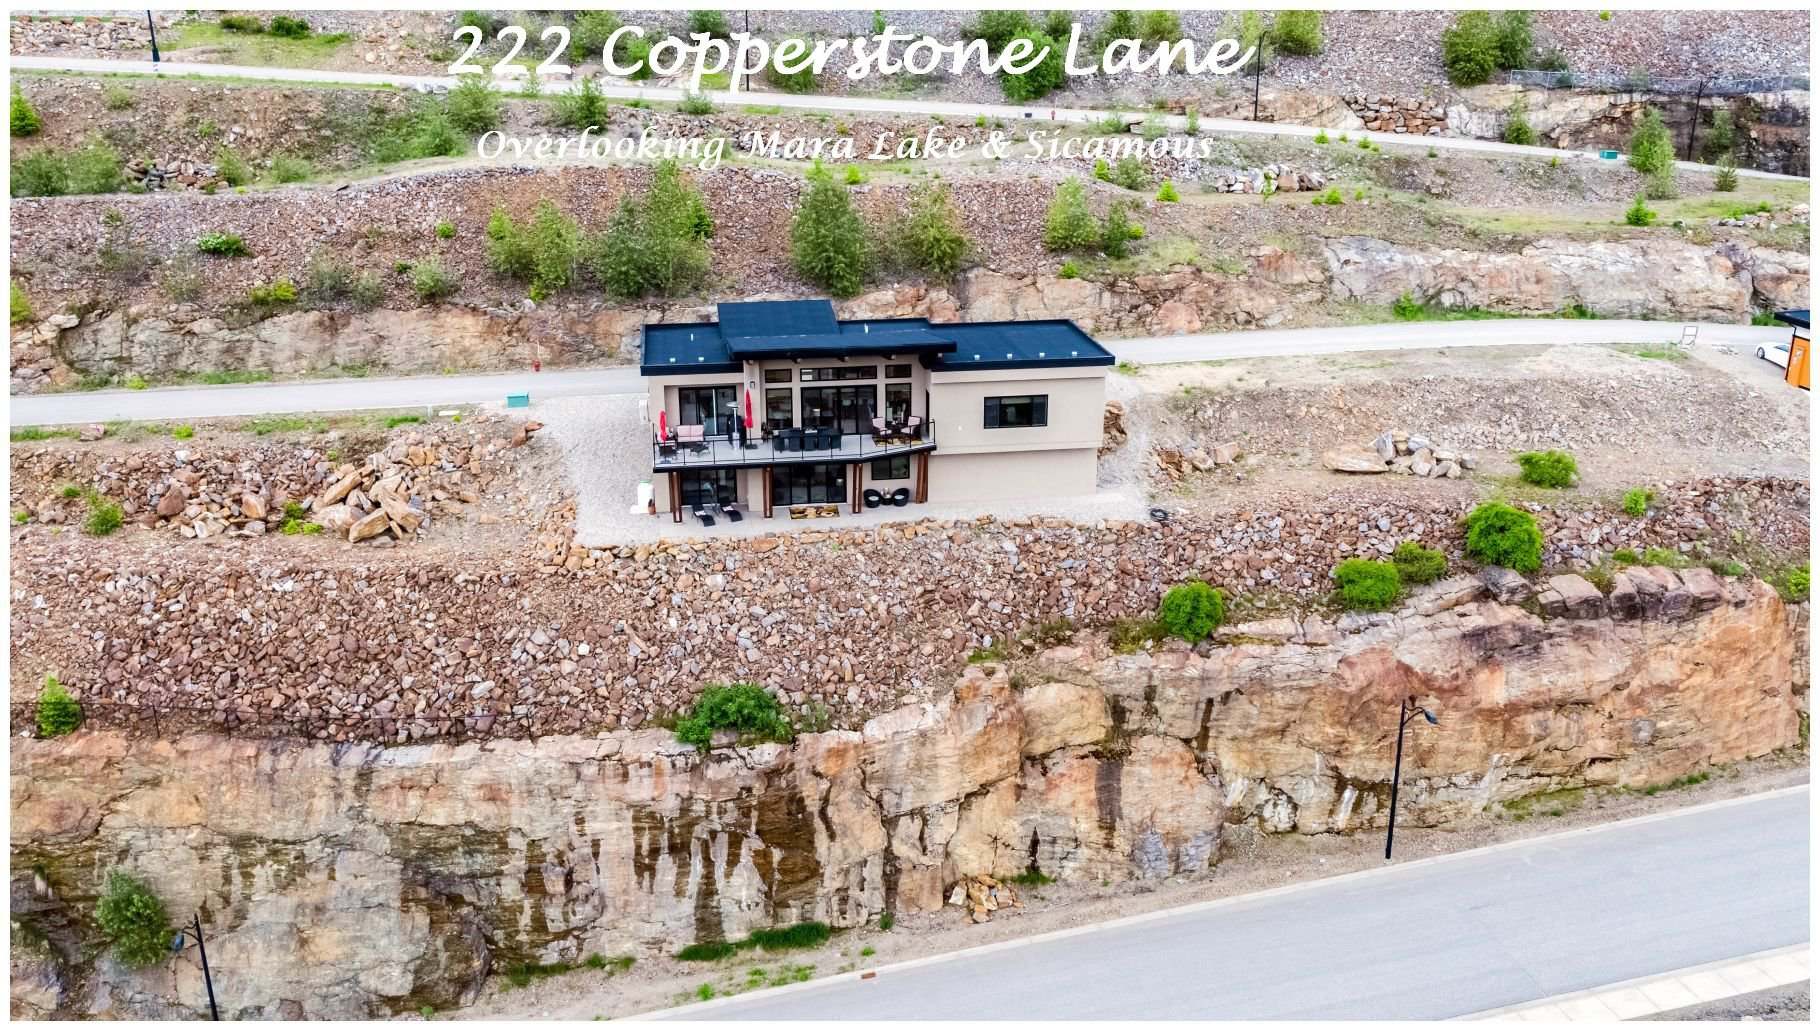 Main Photo: 222 Copperstone Lane in Sicamous: Bayview Estates House for sale : MLS®# 10205628